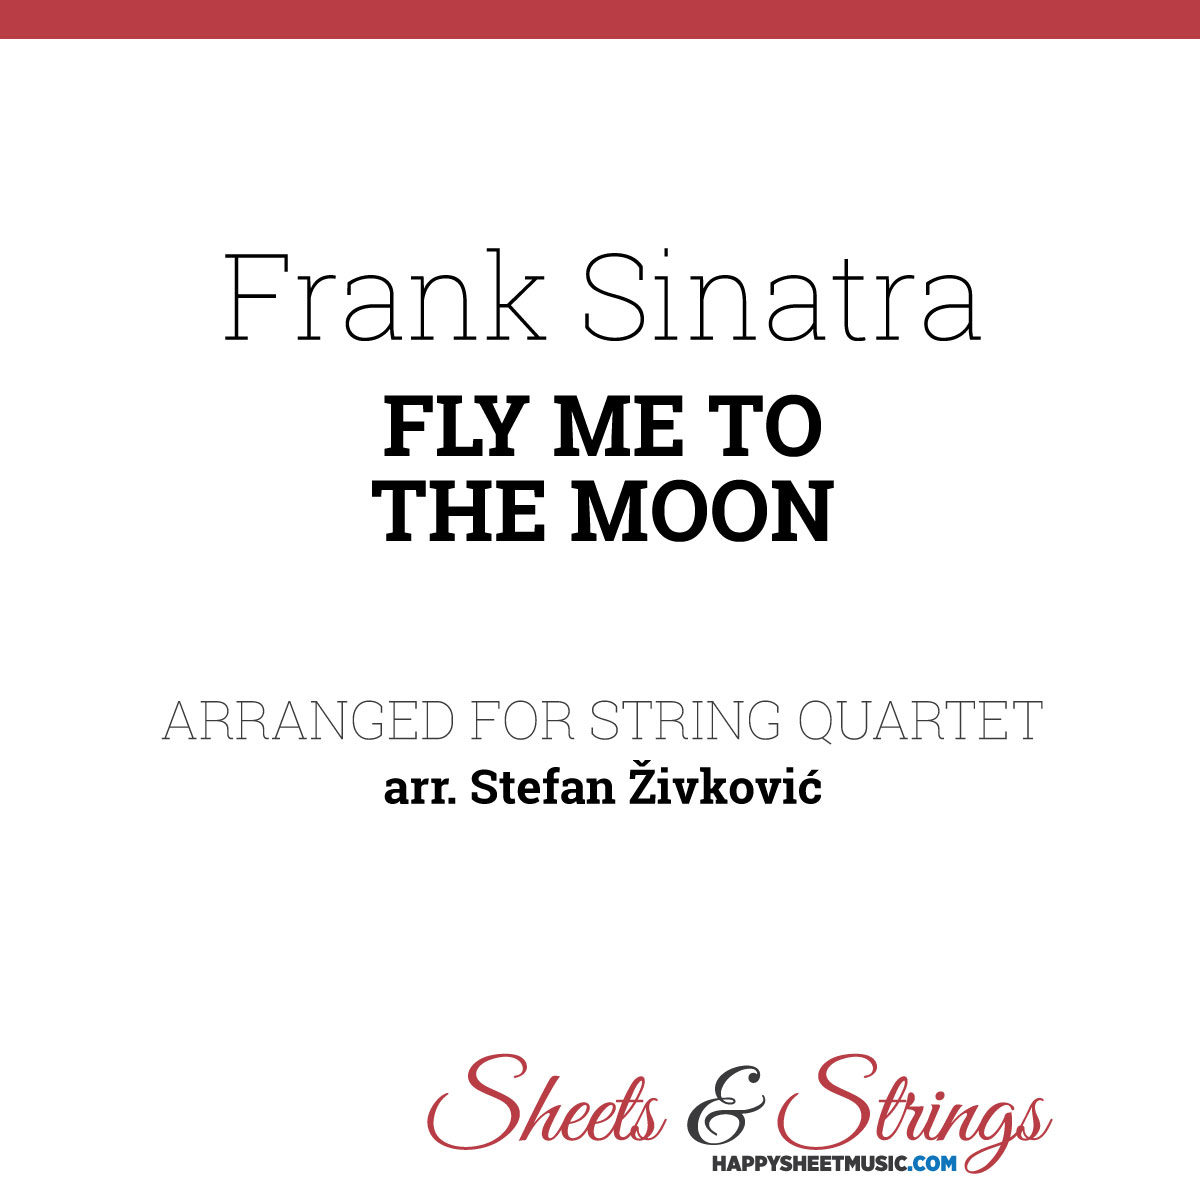 Frank Sinatra - Fly me to the Moon Sheet Music for String Quartet